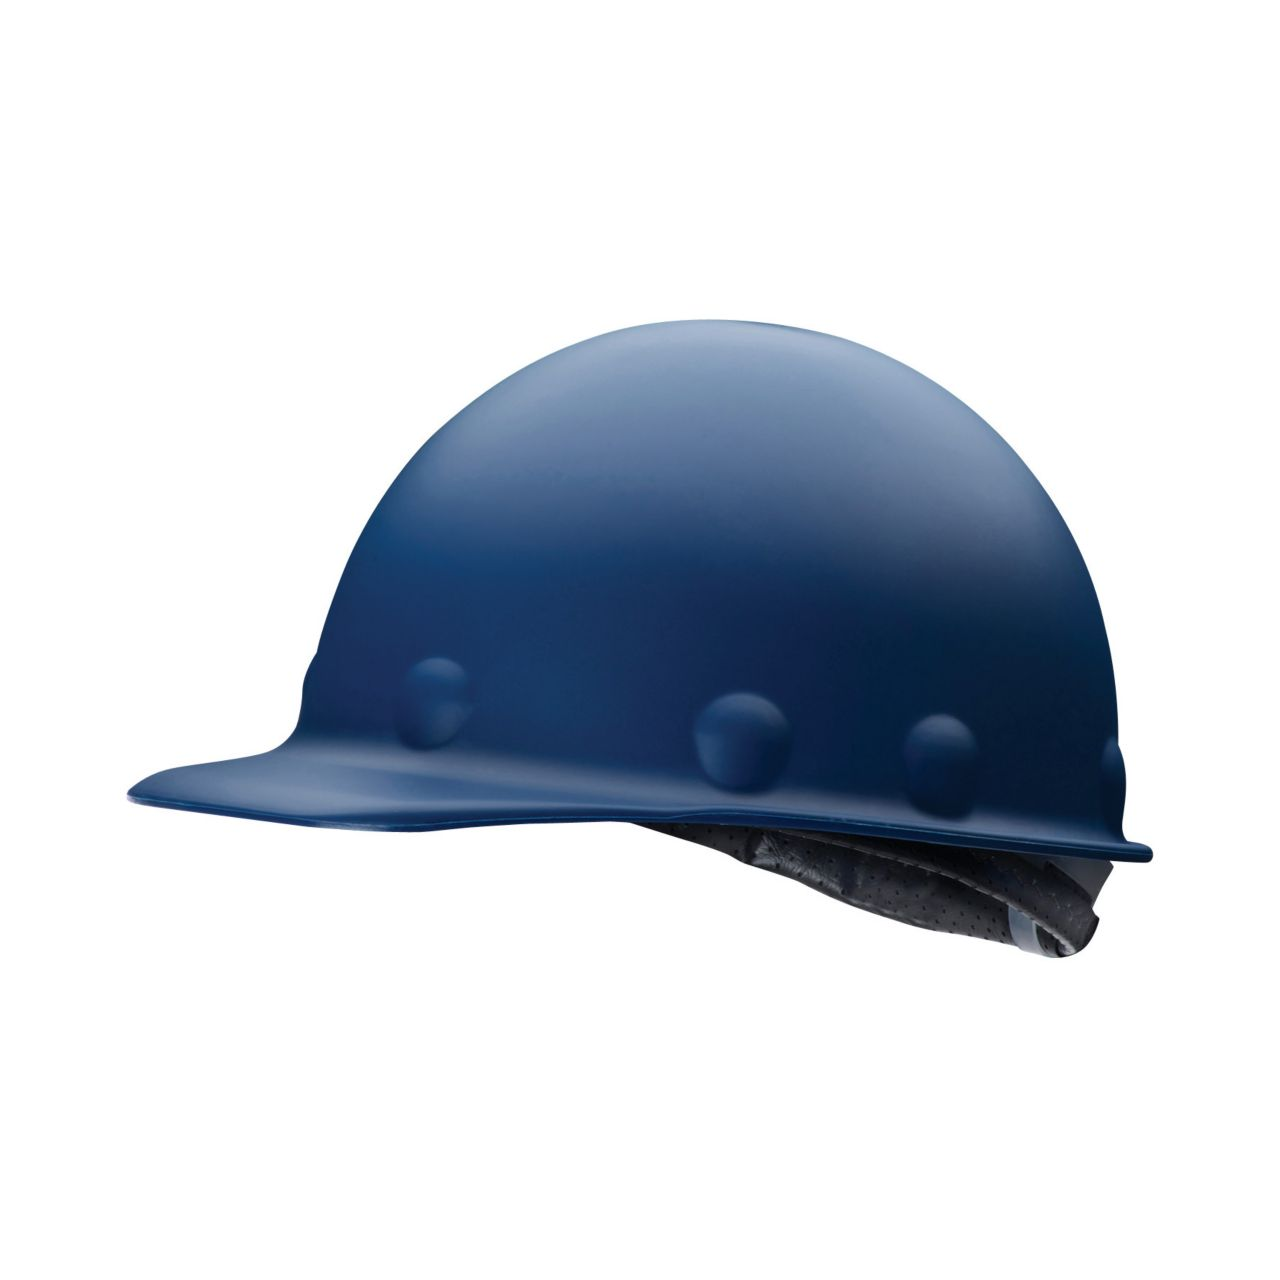 P2HNW71A000_Fibre-Metal_Hard_hats